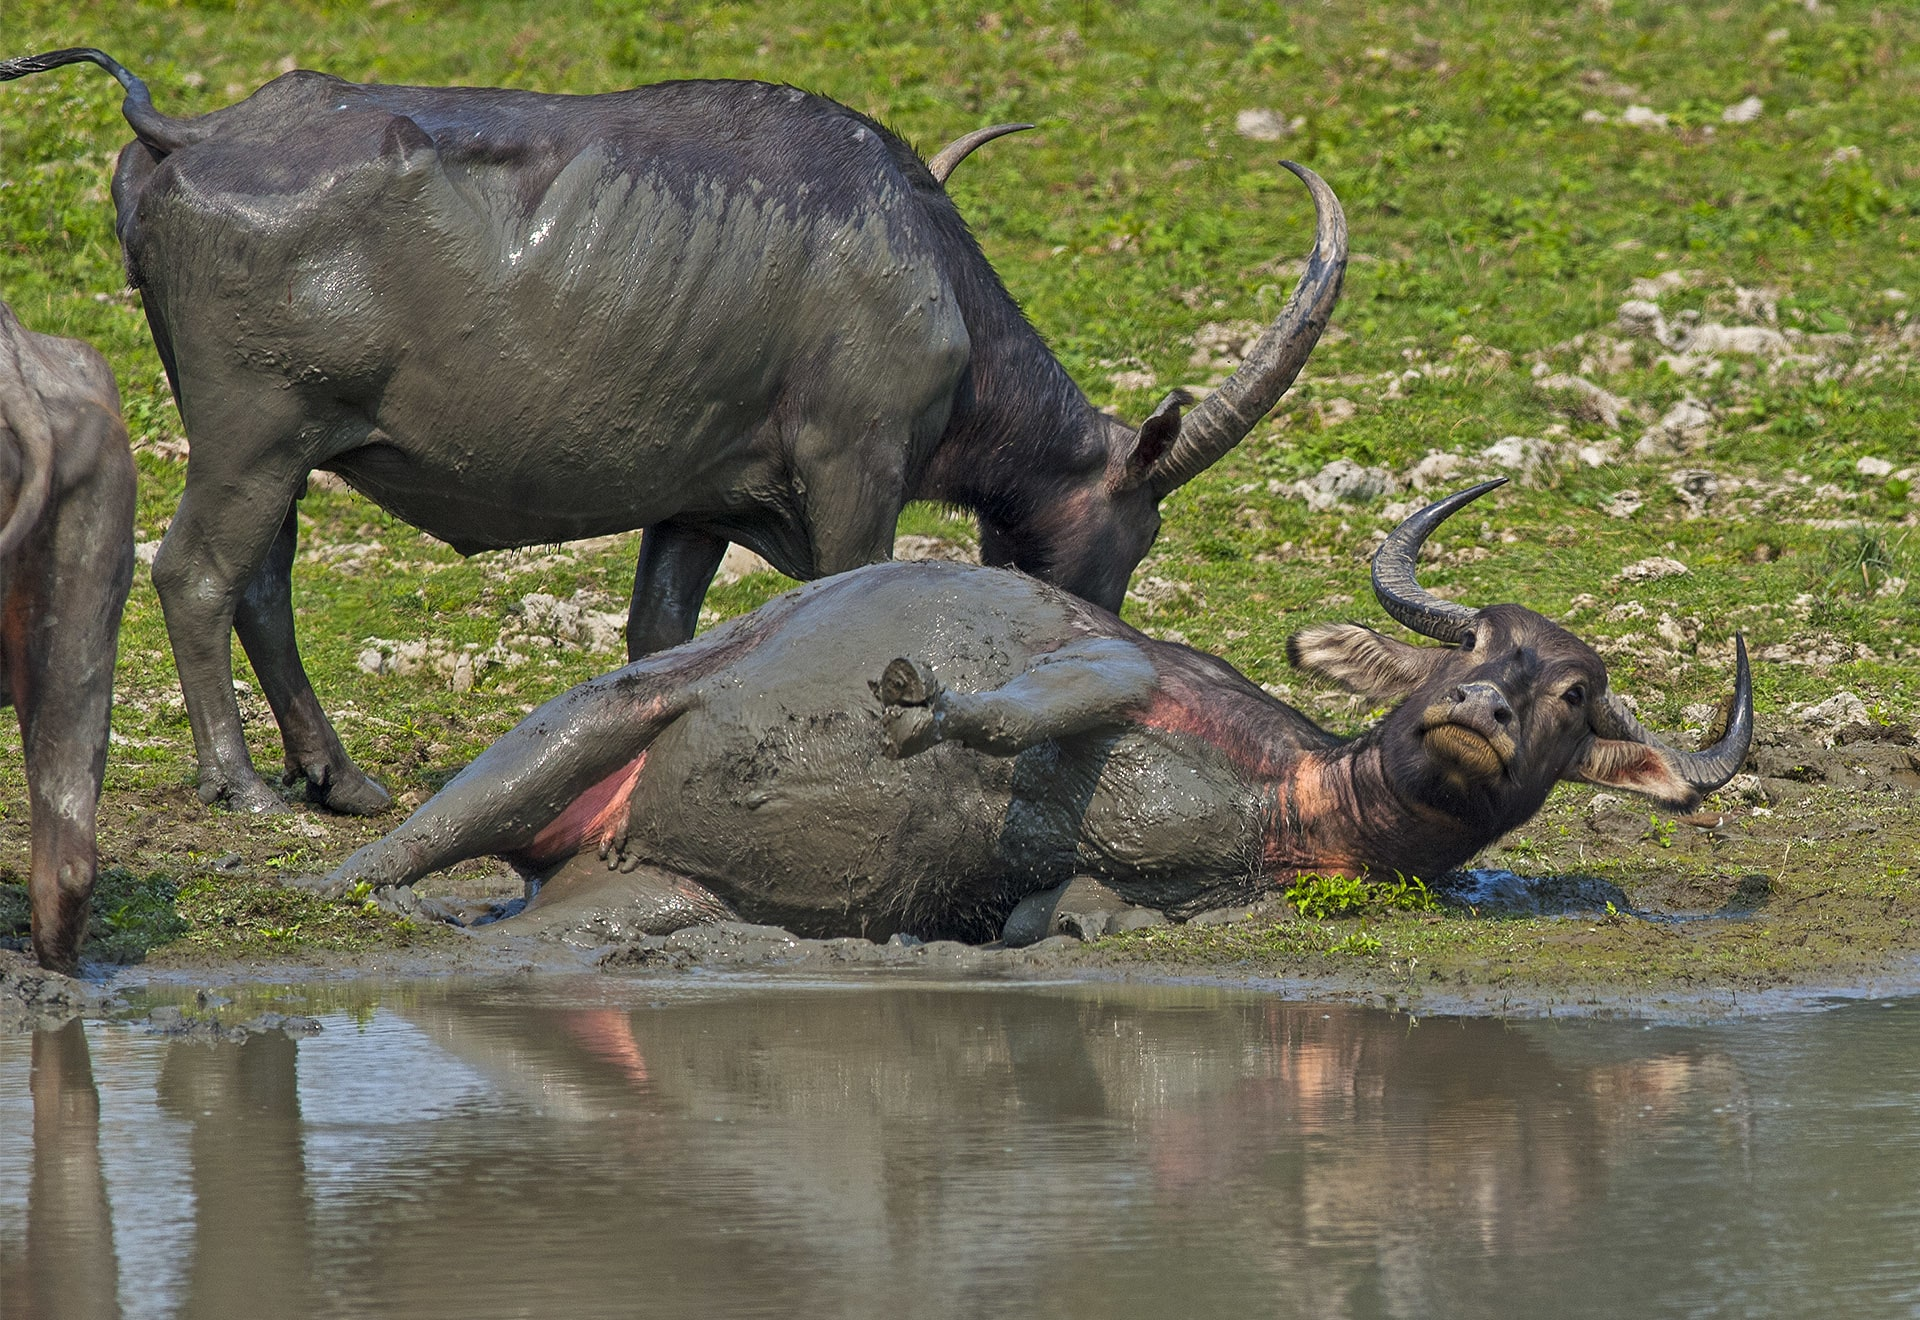 During the day wild water buffalo will either find shade in the forest, or wallow in water or mud pools to cool off and keep insect pests away. Photo: Dhritiman Mukherjee